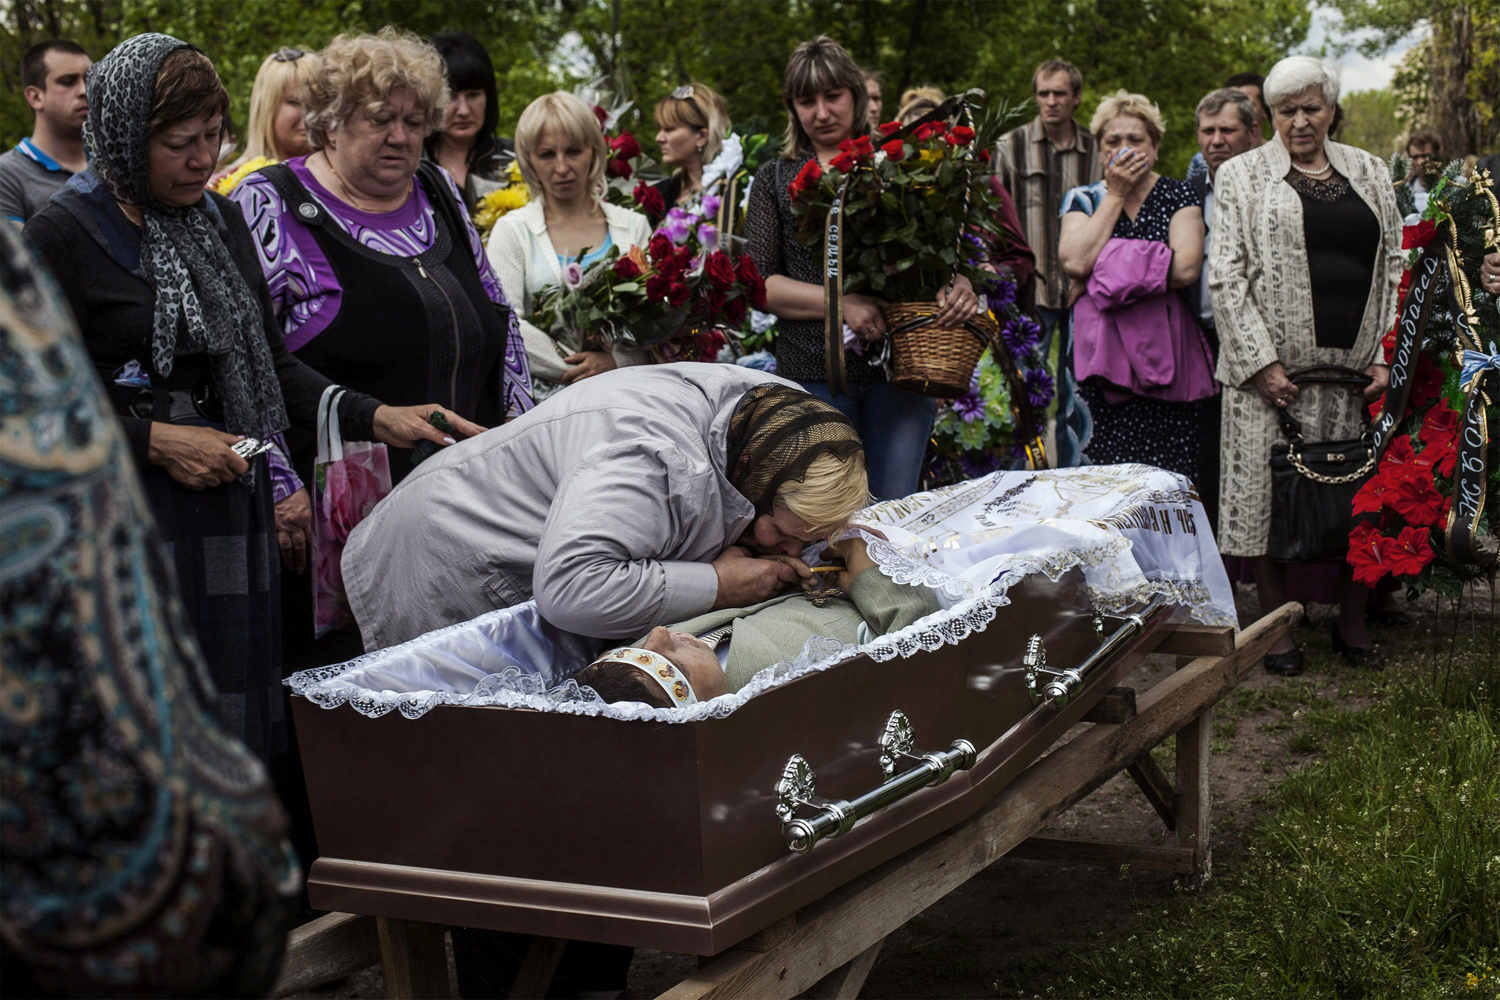 May 13, 2014. Relatives of Hyudych Vadim Yurievichq, including his mother, center, mourn his death, at the Krasnoarmeysk cemetery, eastern Ukraine, May 13, 2014.